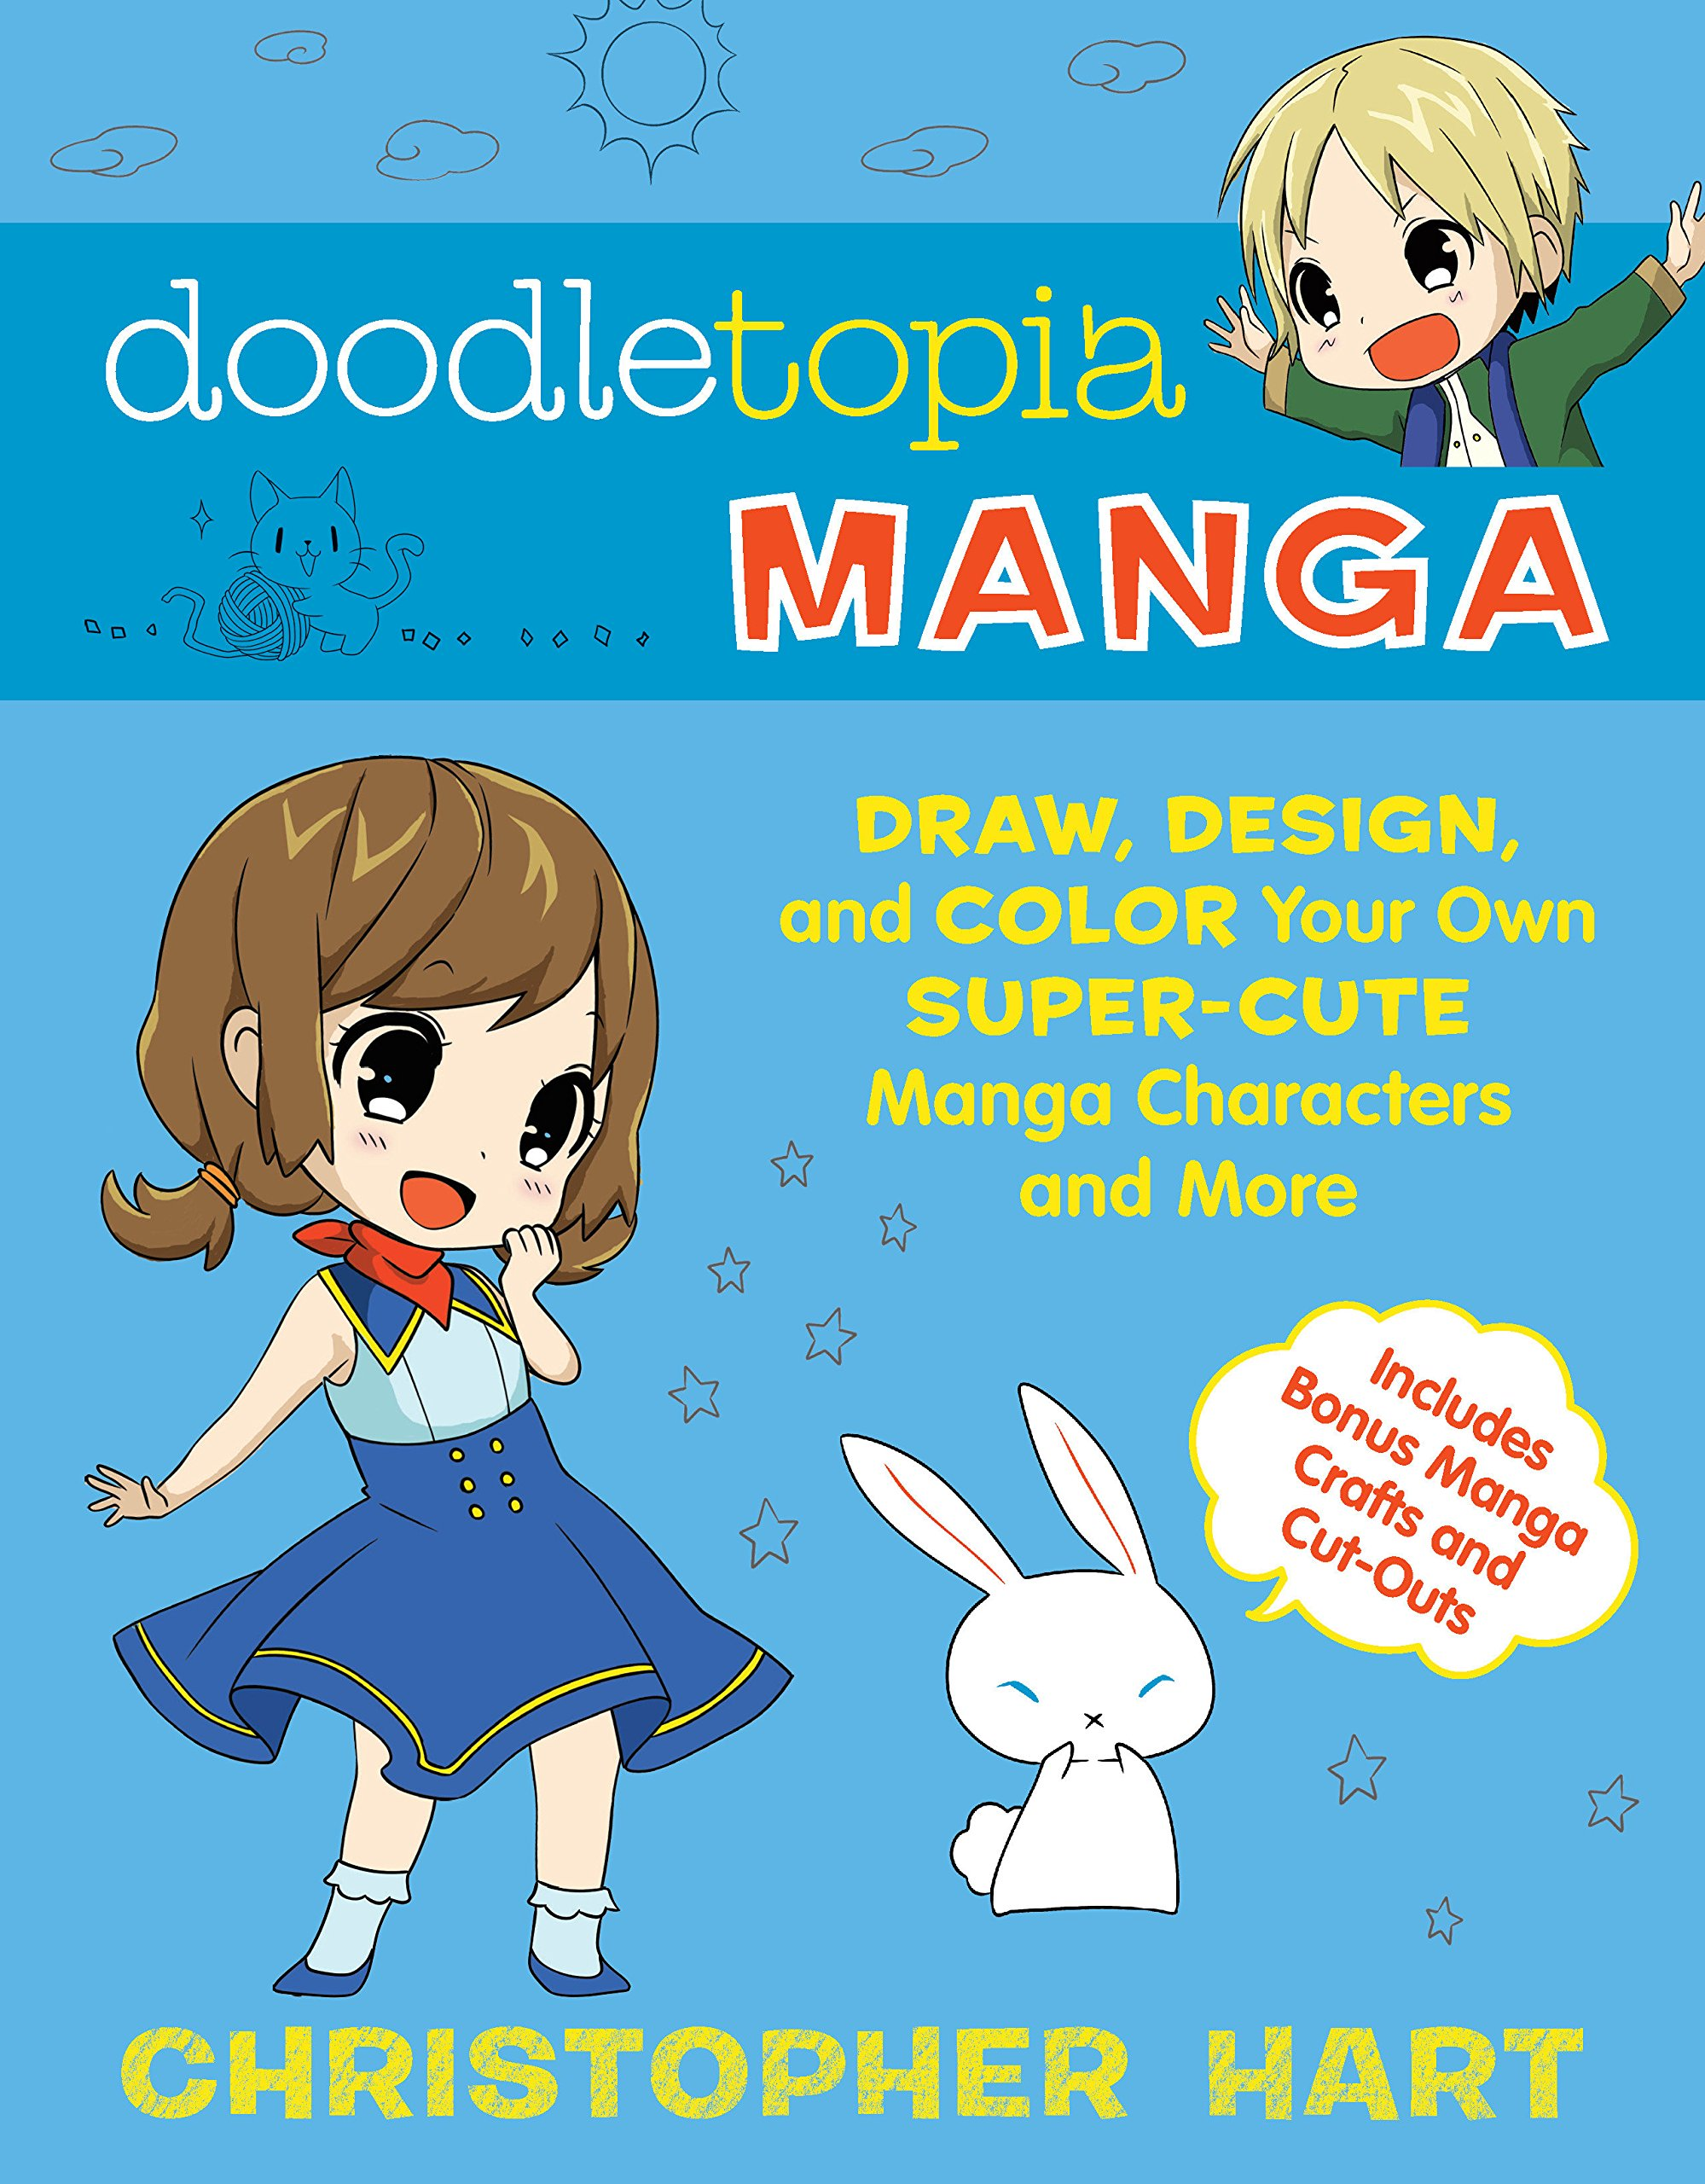 Doodletopia Manga: Draw, Design, and Color Your Own Super-Cute Manga Characters and More